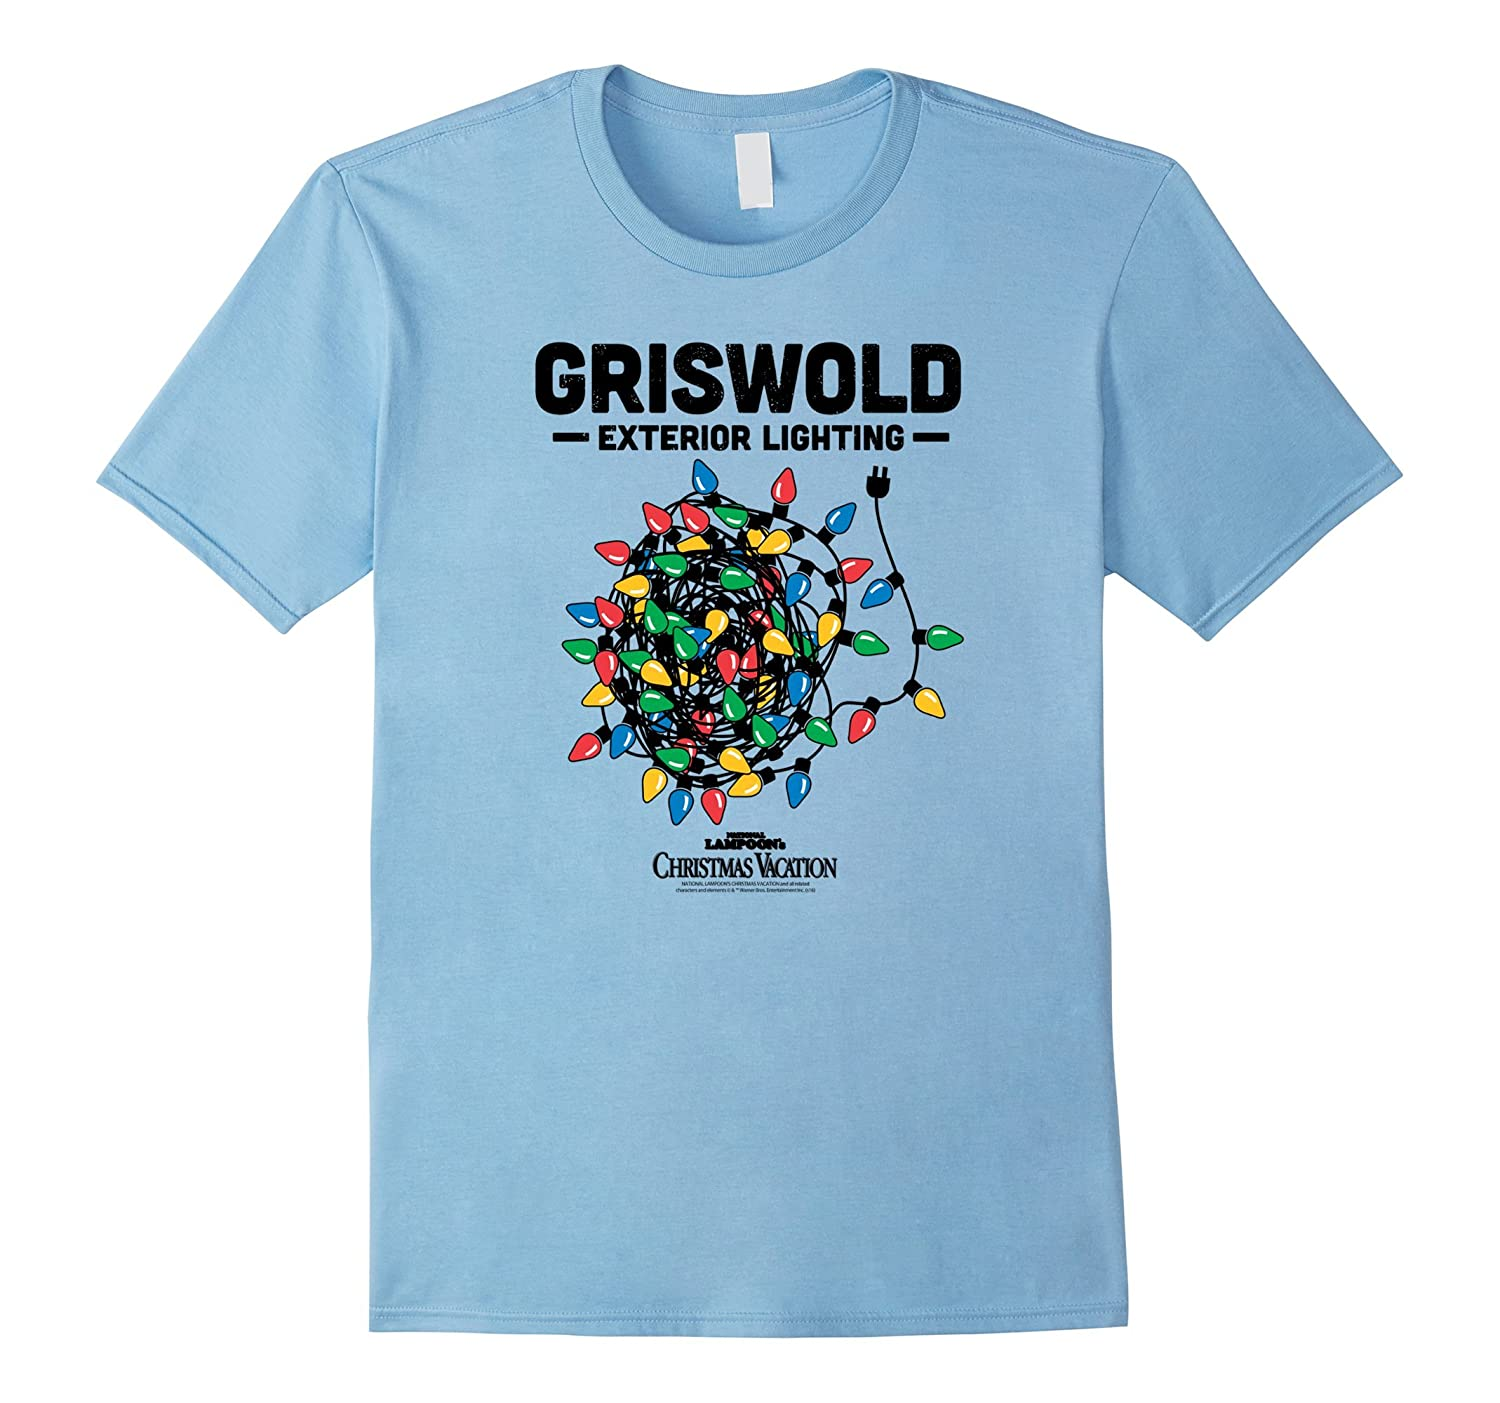 Christmas Vacation Shirts.Christmas Vacation Griswold Exterior Lighting T Shirt Bn